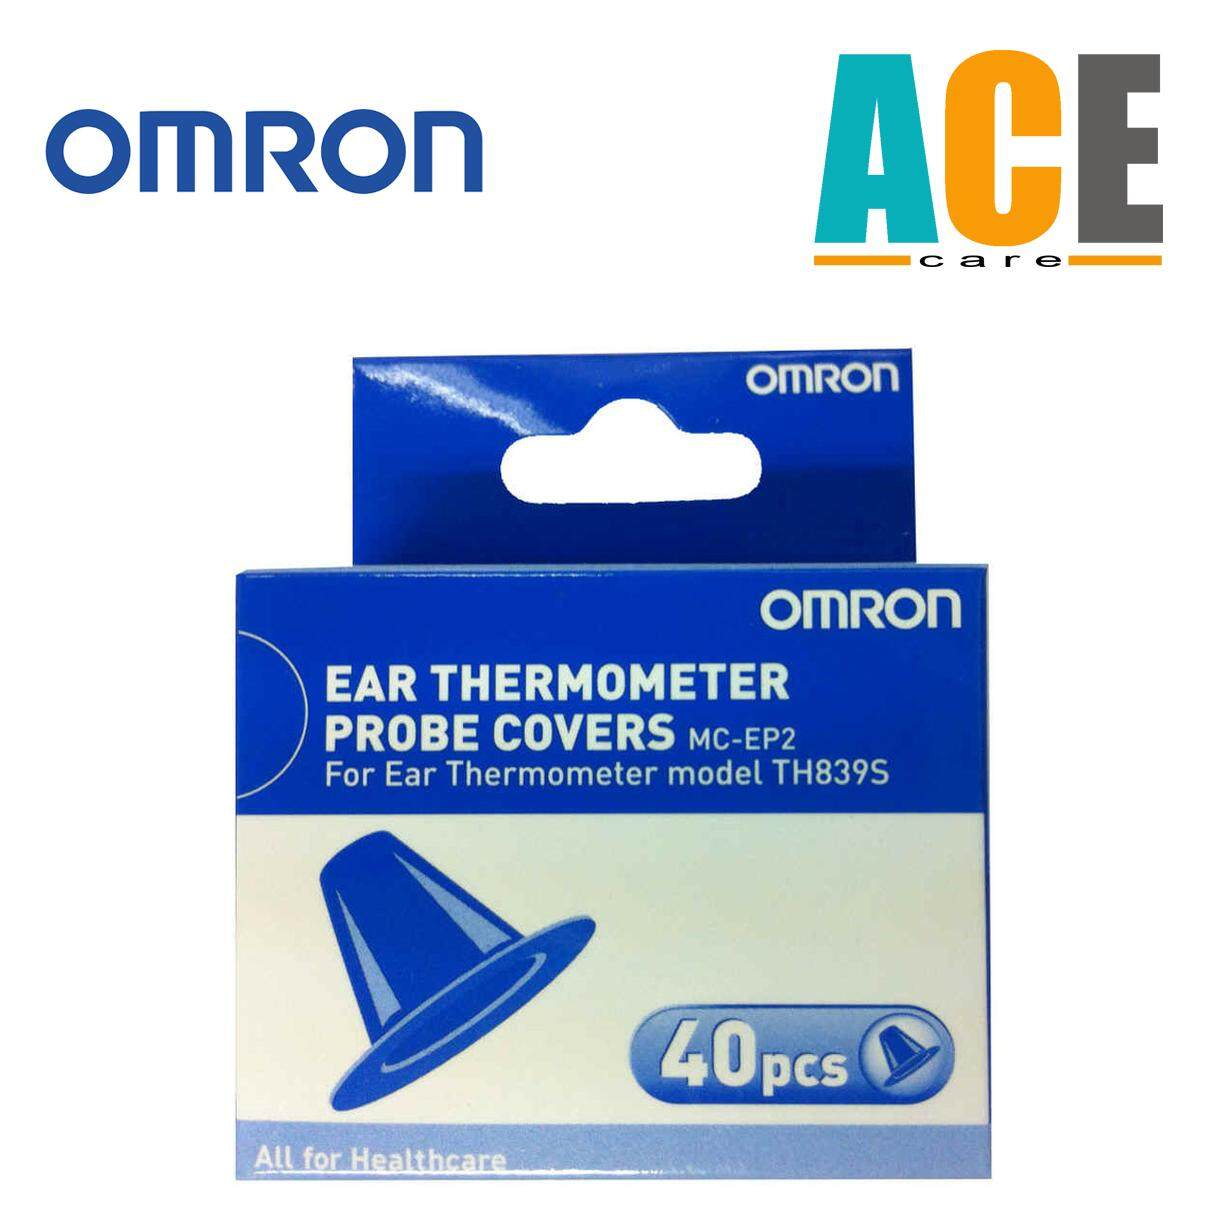 Omron Ear Thermometer Probe Covers TH-8395